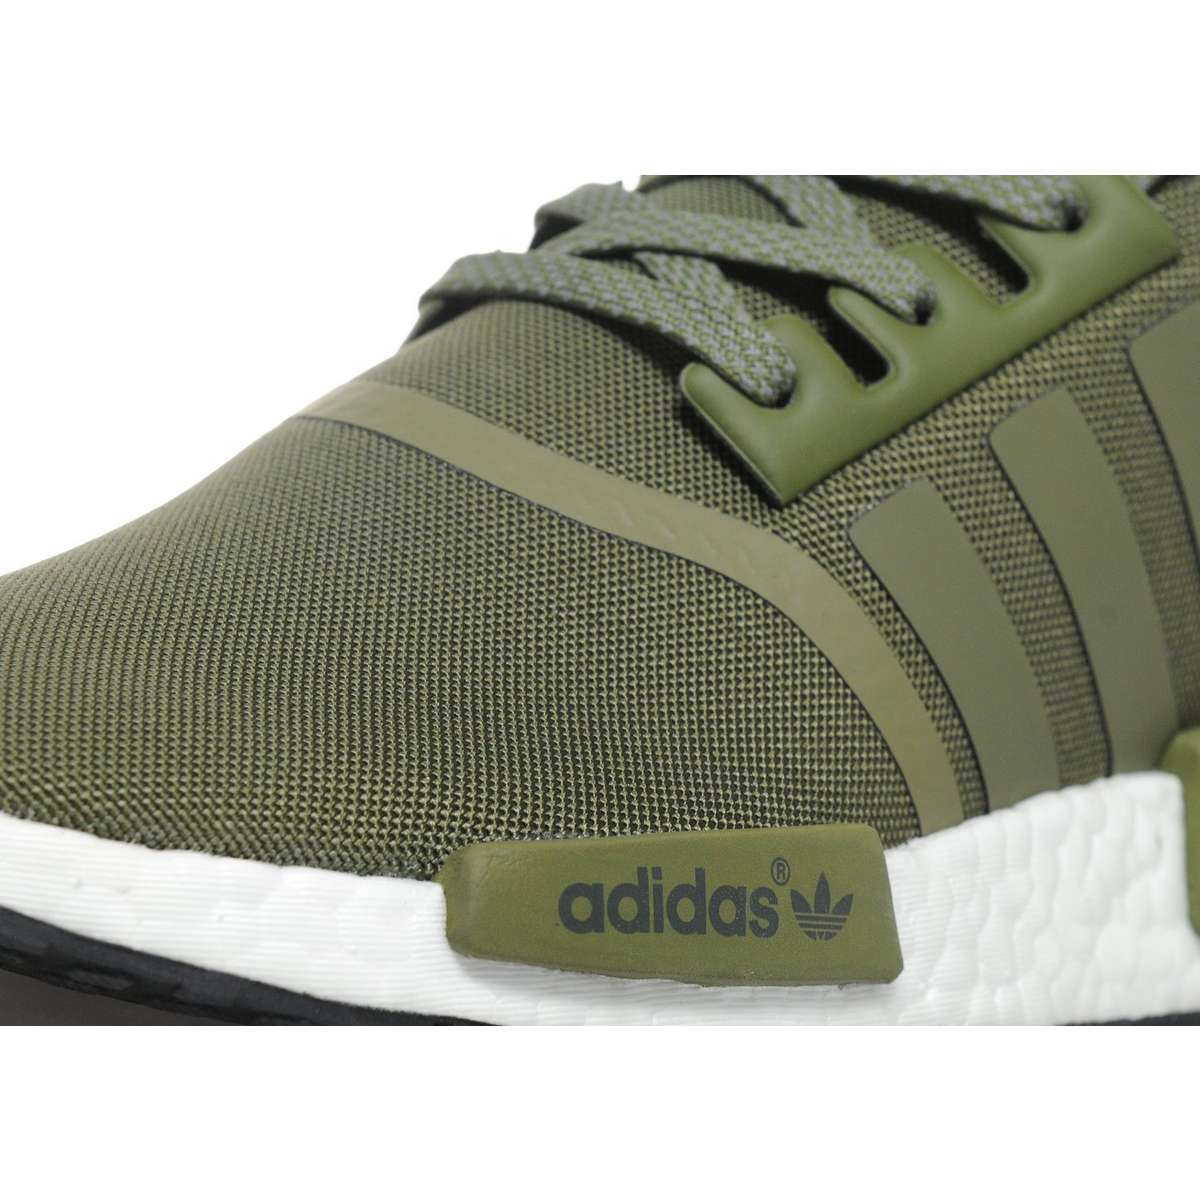 adidas NMD R1 x JD Sports UK Exclusive